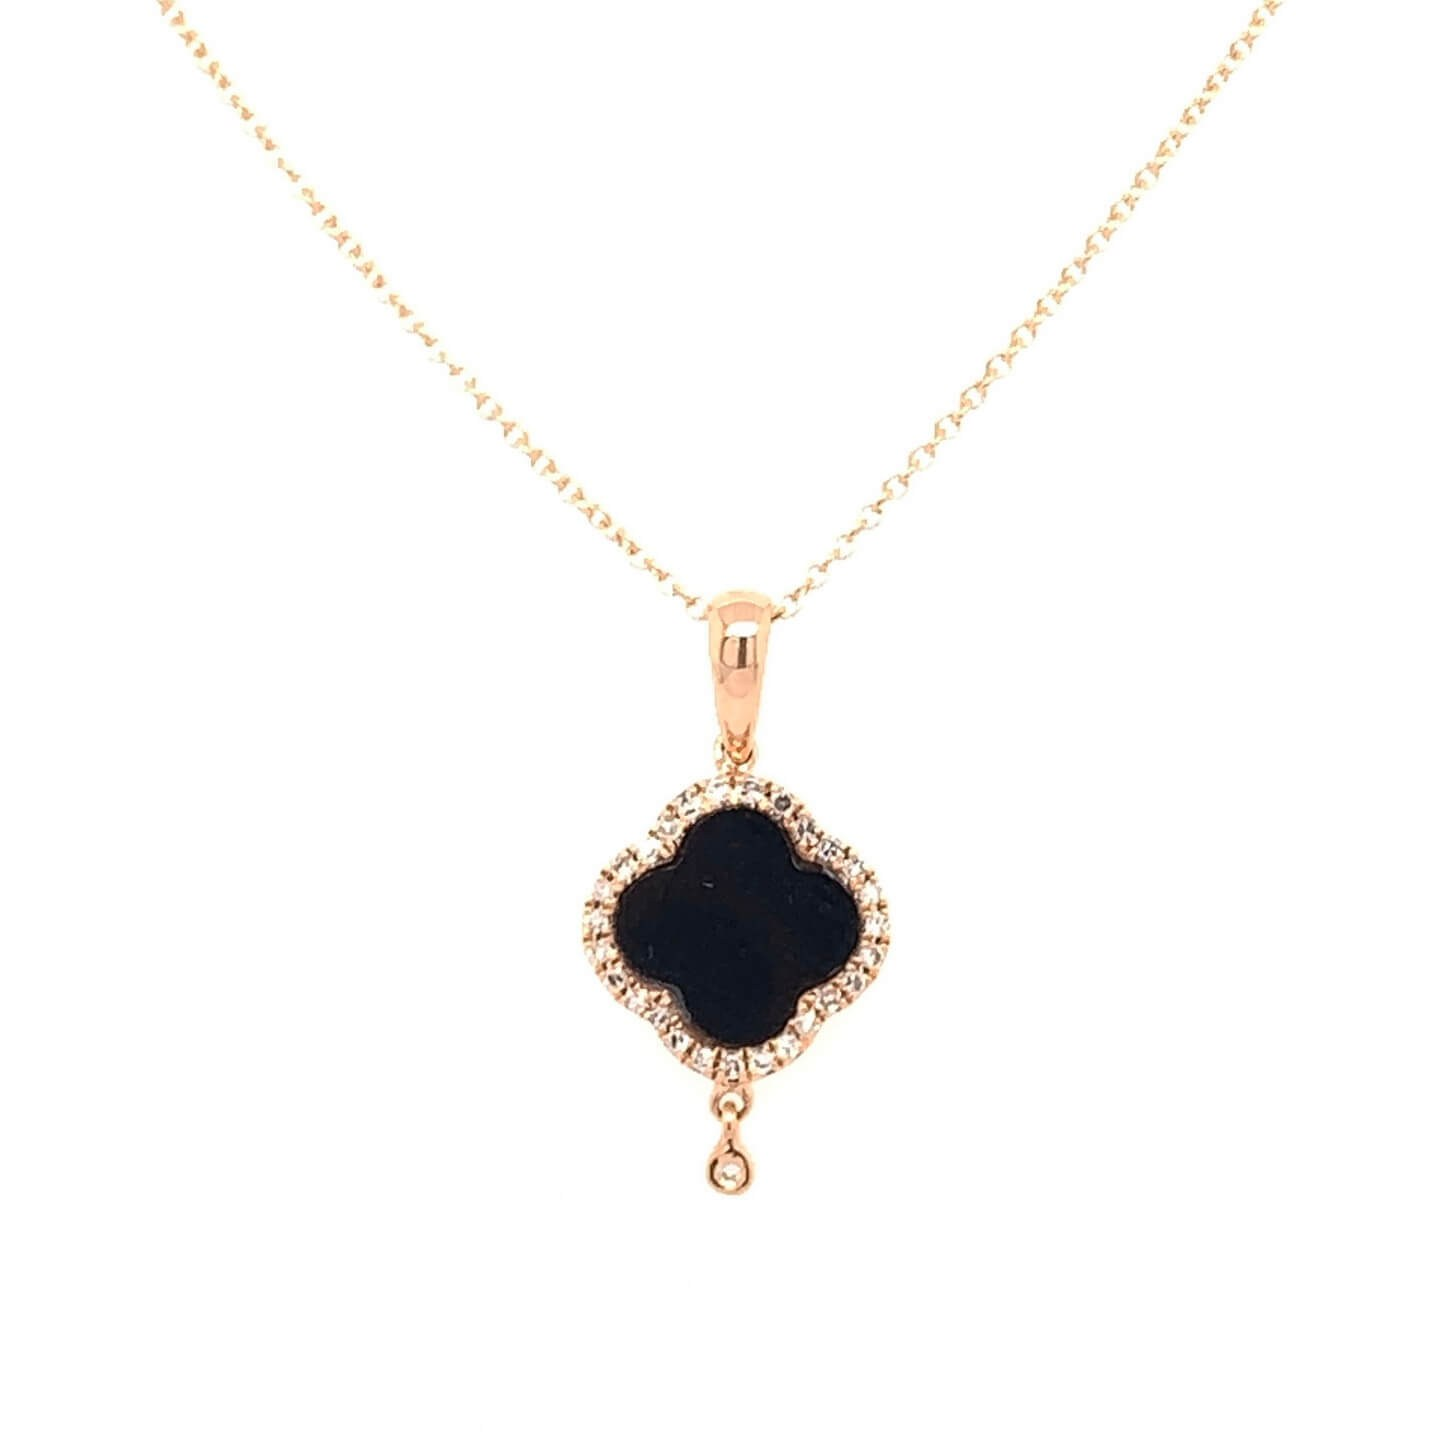 Rose gold K18 pendant with diamond 0.07ct and onyx 0.54ct accompanied by chain